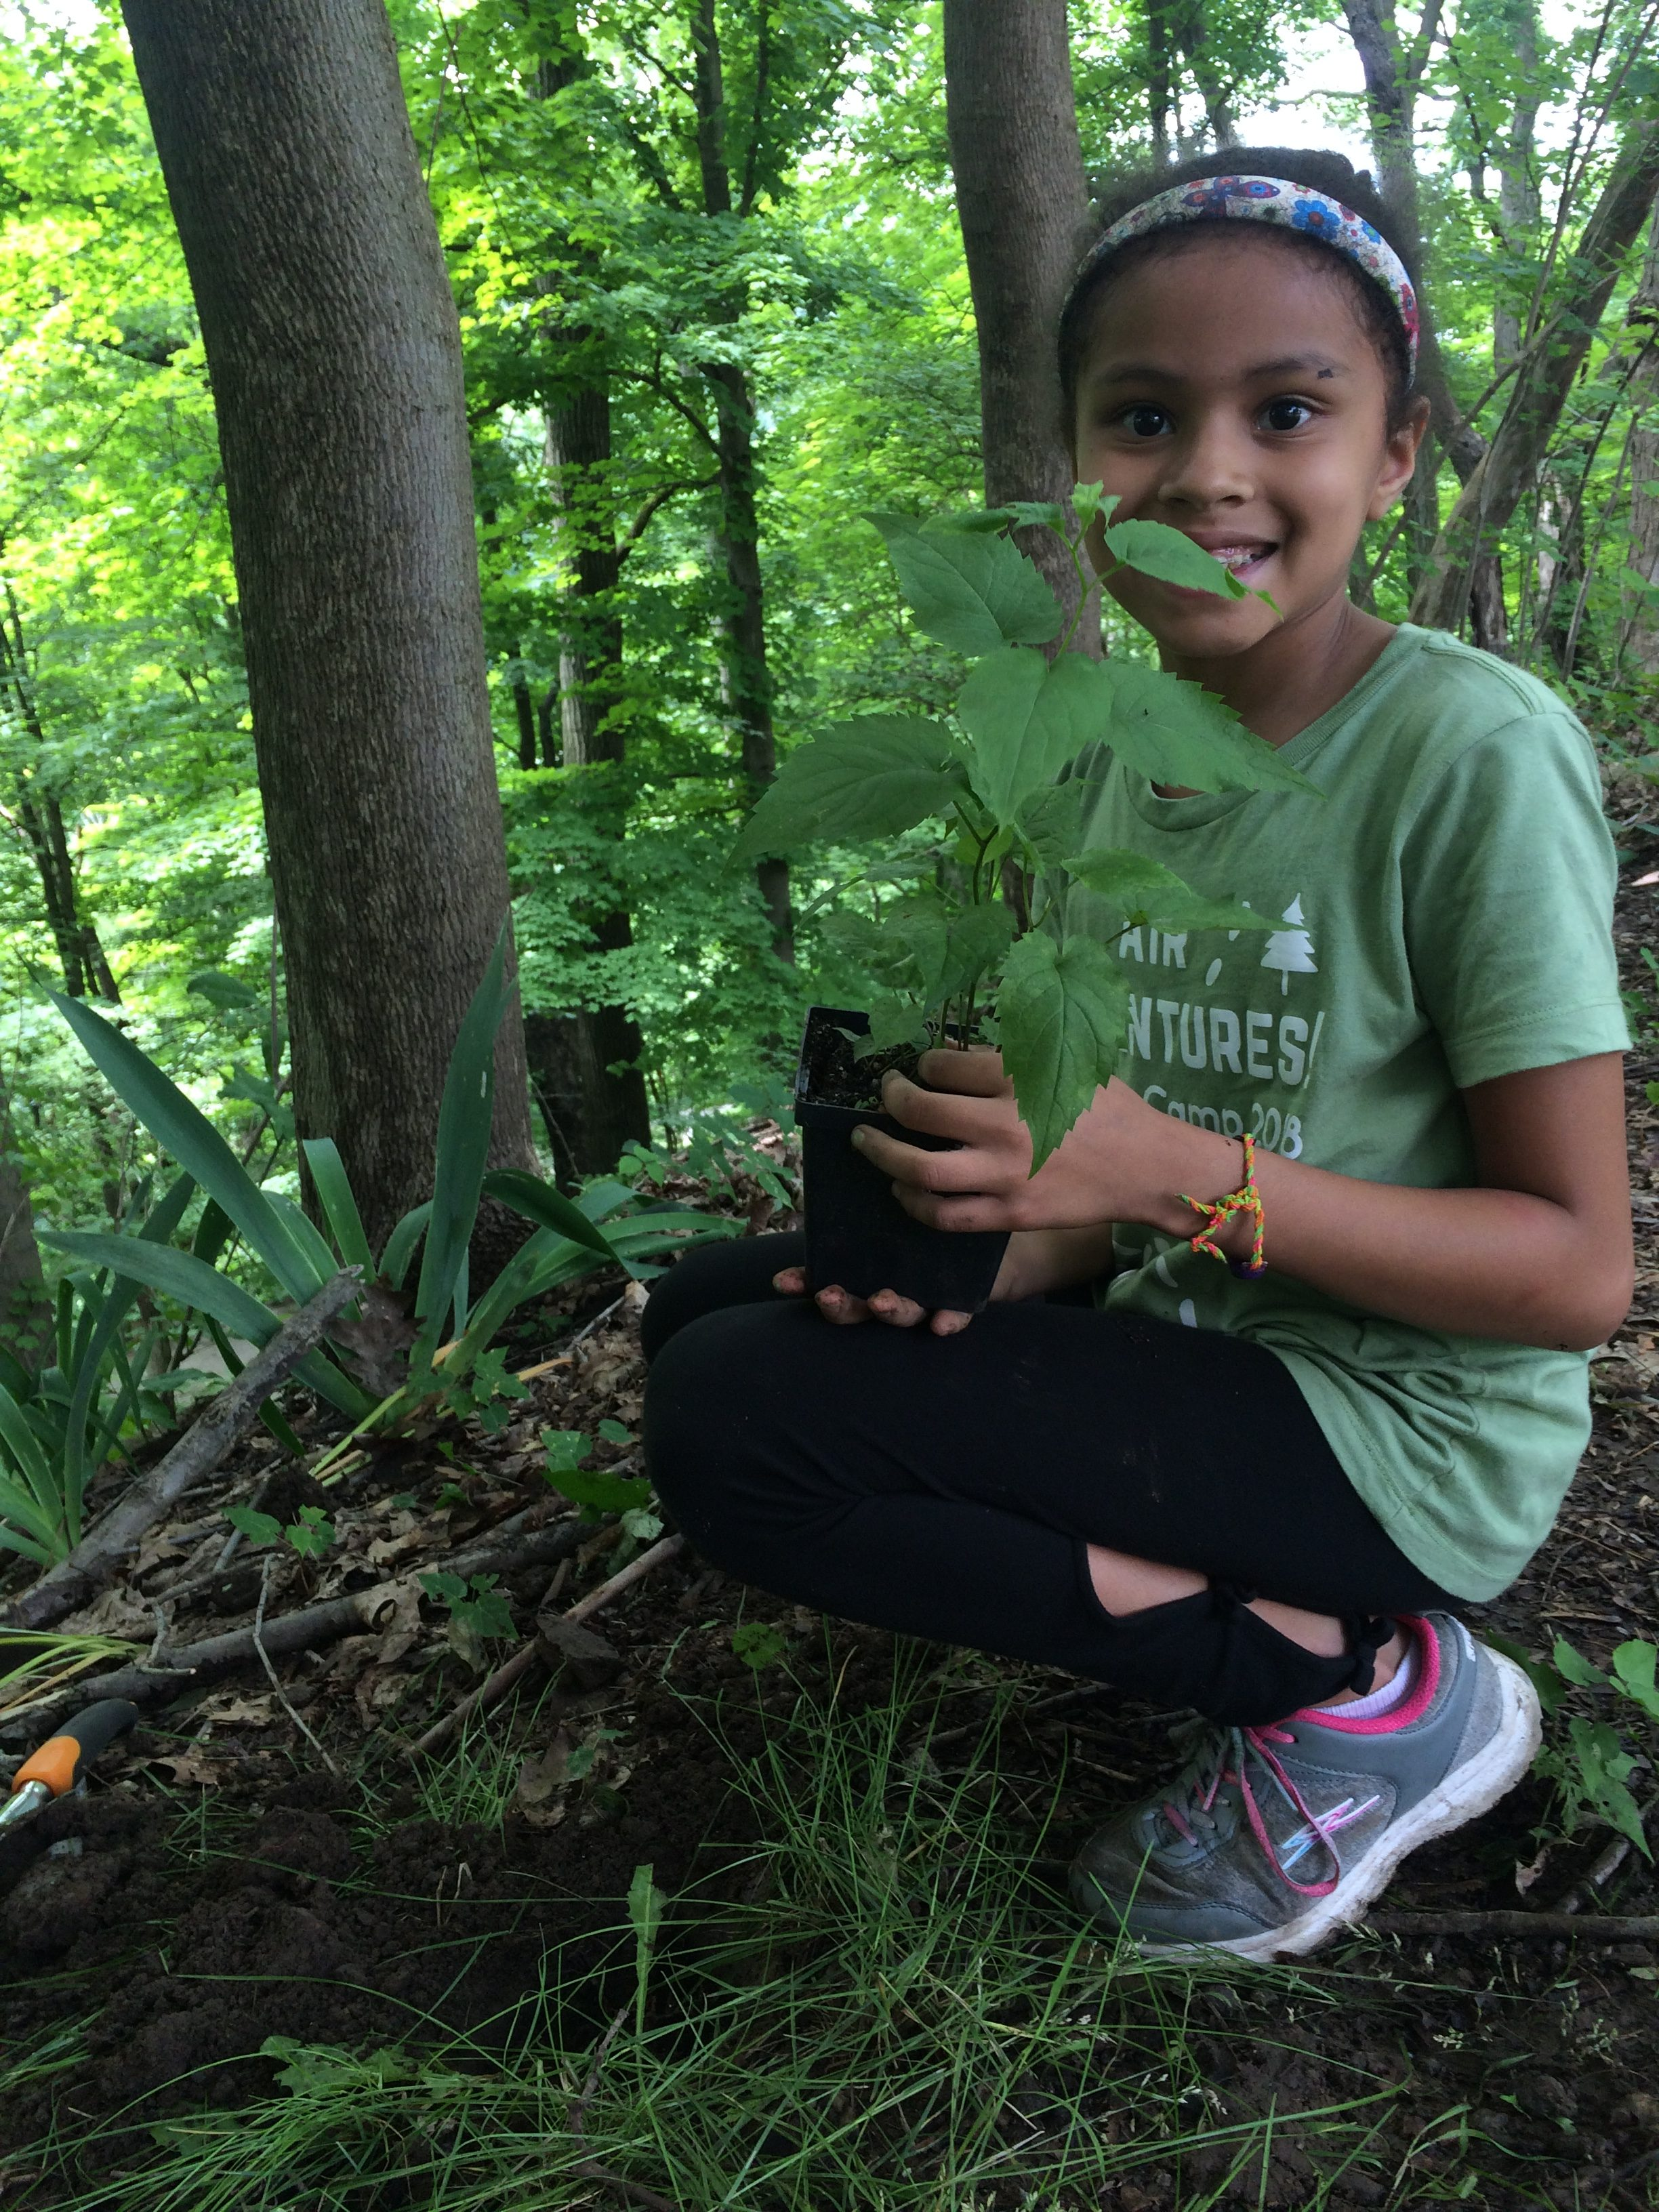 Air Adventures Summer Camp- campers plant native species to help improve air quality